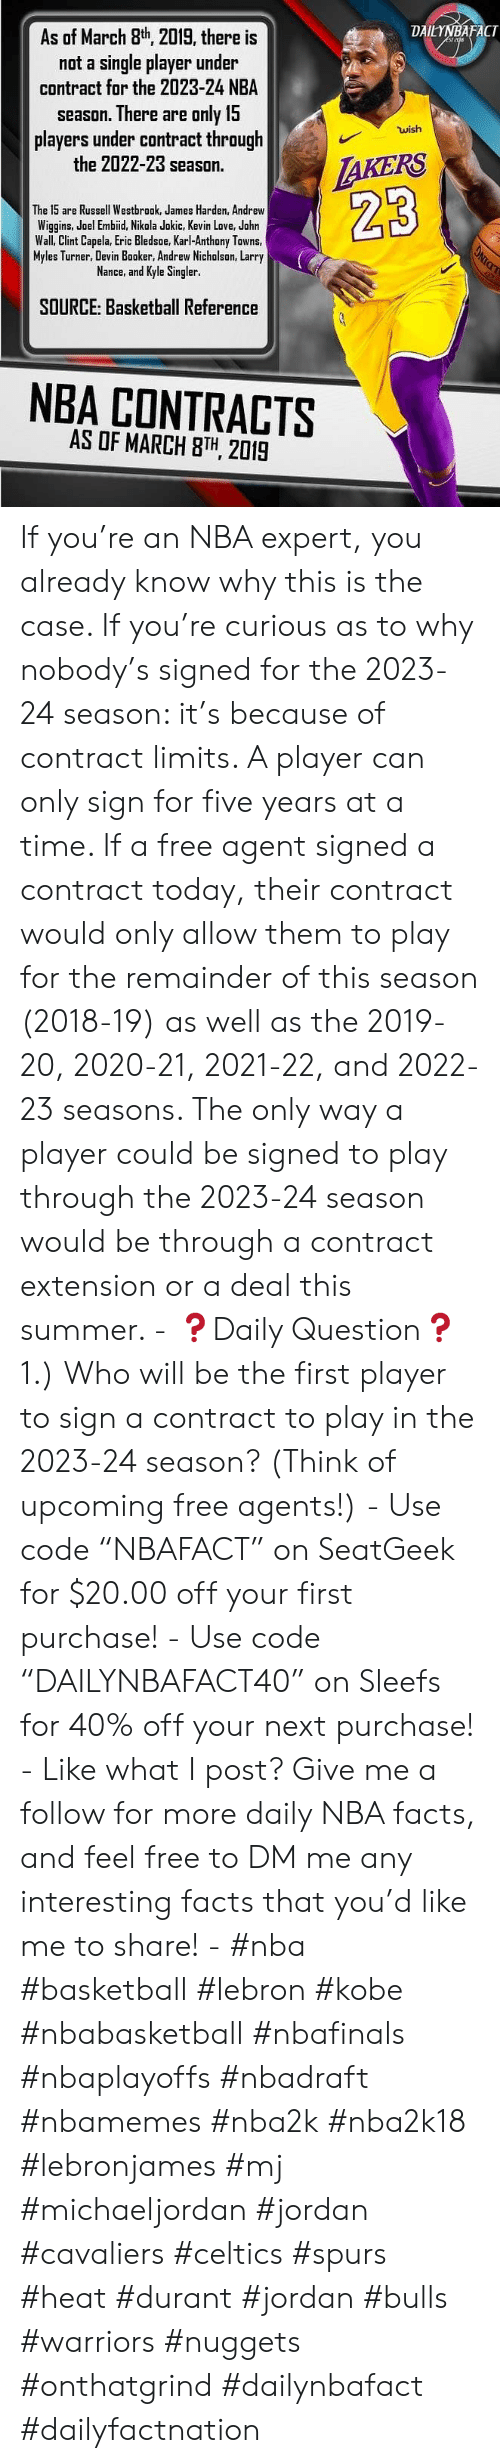 "Basketball, Facts, and James Harden: DAILYNBAFACT  As of March 8th 2019, there is  not a single player under  contract for the 2023-24 NBA  season. There are only 15  players under contract through  the 2022-23 season.  wish  The 15 are Russell Westbrook, James Harden, Andrew  Wiggins, Joel Embiid, Nikola Jokic, Kevin Love, Jahn  Wall, Clint Capela, Eric Bledsoe, Karl-Anthony Towns,  Myles Turner, Devin Booker, Andrew Nichalsan, Larry  Nance, and Kyle Singler  23  SOURCE: Basketball Reference  NBA CONTRACTS  AS OF MARCH 8TH, 2019 If you're an NBA expert, you already know why this is the case. If you're curious as to why nobody's signed for the 2023-24 season: it's because of contract limits. A player can only sign for five years at a time. If a free agent signed a contract today, their contract would only allow them to play for the remainder of this season (2018-19) as well as the 2019-20, 2020-21, 2021-22, and 2022-23 seasons. The only way a player could be signed to play through the 2023-24 season would be through a contract extension or a deal this summer. - ❓Daily Question❓ 1.) Who will be the first player to sign a contract to play in the 2023-24 season? (Think of upcoming free agents!) - Use code ""NBAFACT"" on SeatGeek for $20.00 off your first purchase! - Use code ""DAILYNBAFACT40"" on Sleefs for 40% off your next purchase! - Like what I post? Give me a follow for more daily NBA facts, and feel free to DM me any interesting facts that you'd like me to share! - #nba #basketball #lebron #kobe #nbabasketball #nbafinals #nbaplayoffs #nbadraft #nbamemes #nba2k #nba2k18 #lebronjames #mj #michaeljordan #jordan #cavaliers #celtics #spurs #heat #durant #jordan #bulls #warriors #nuggets #onthatgrind #dailynbafact #dailyfactnation"